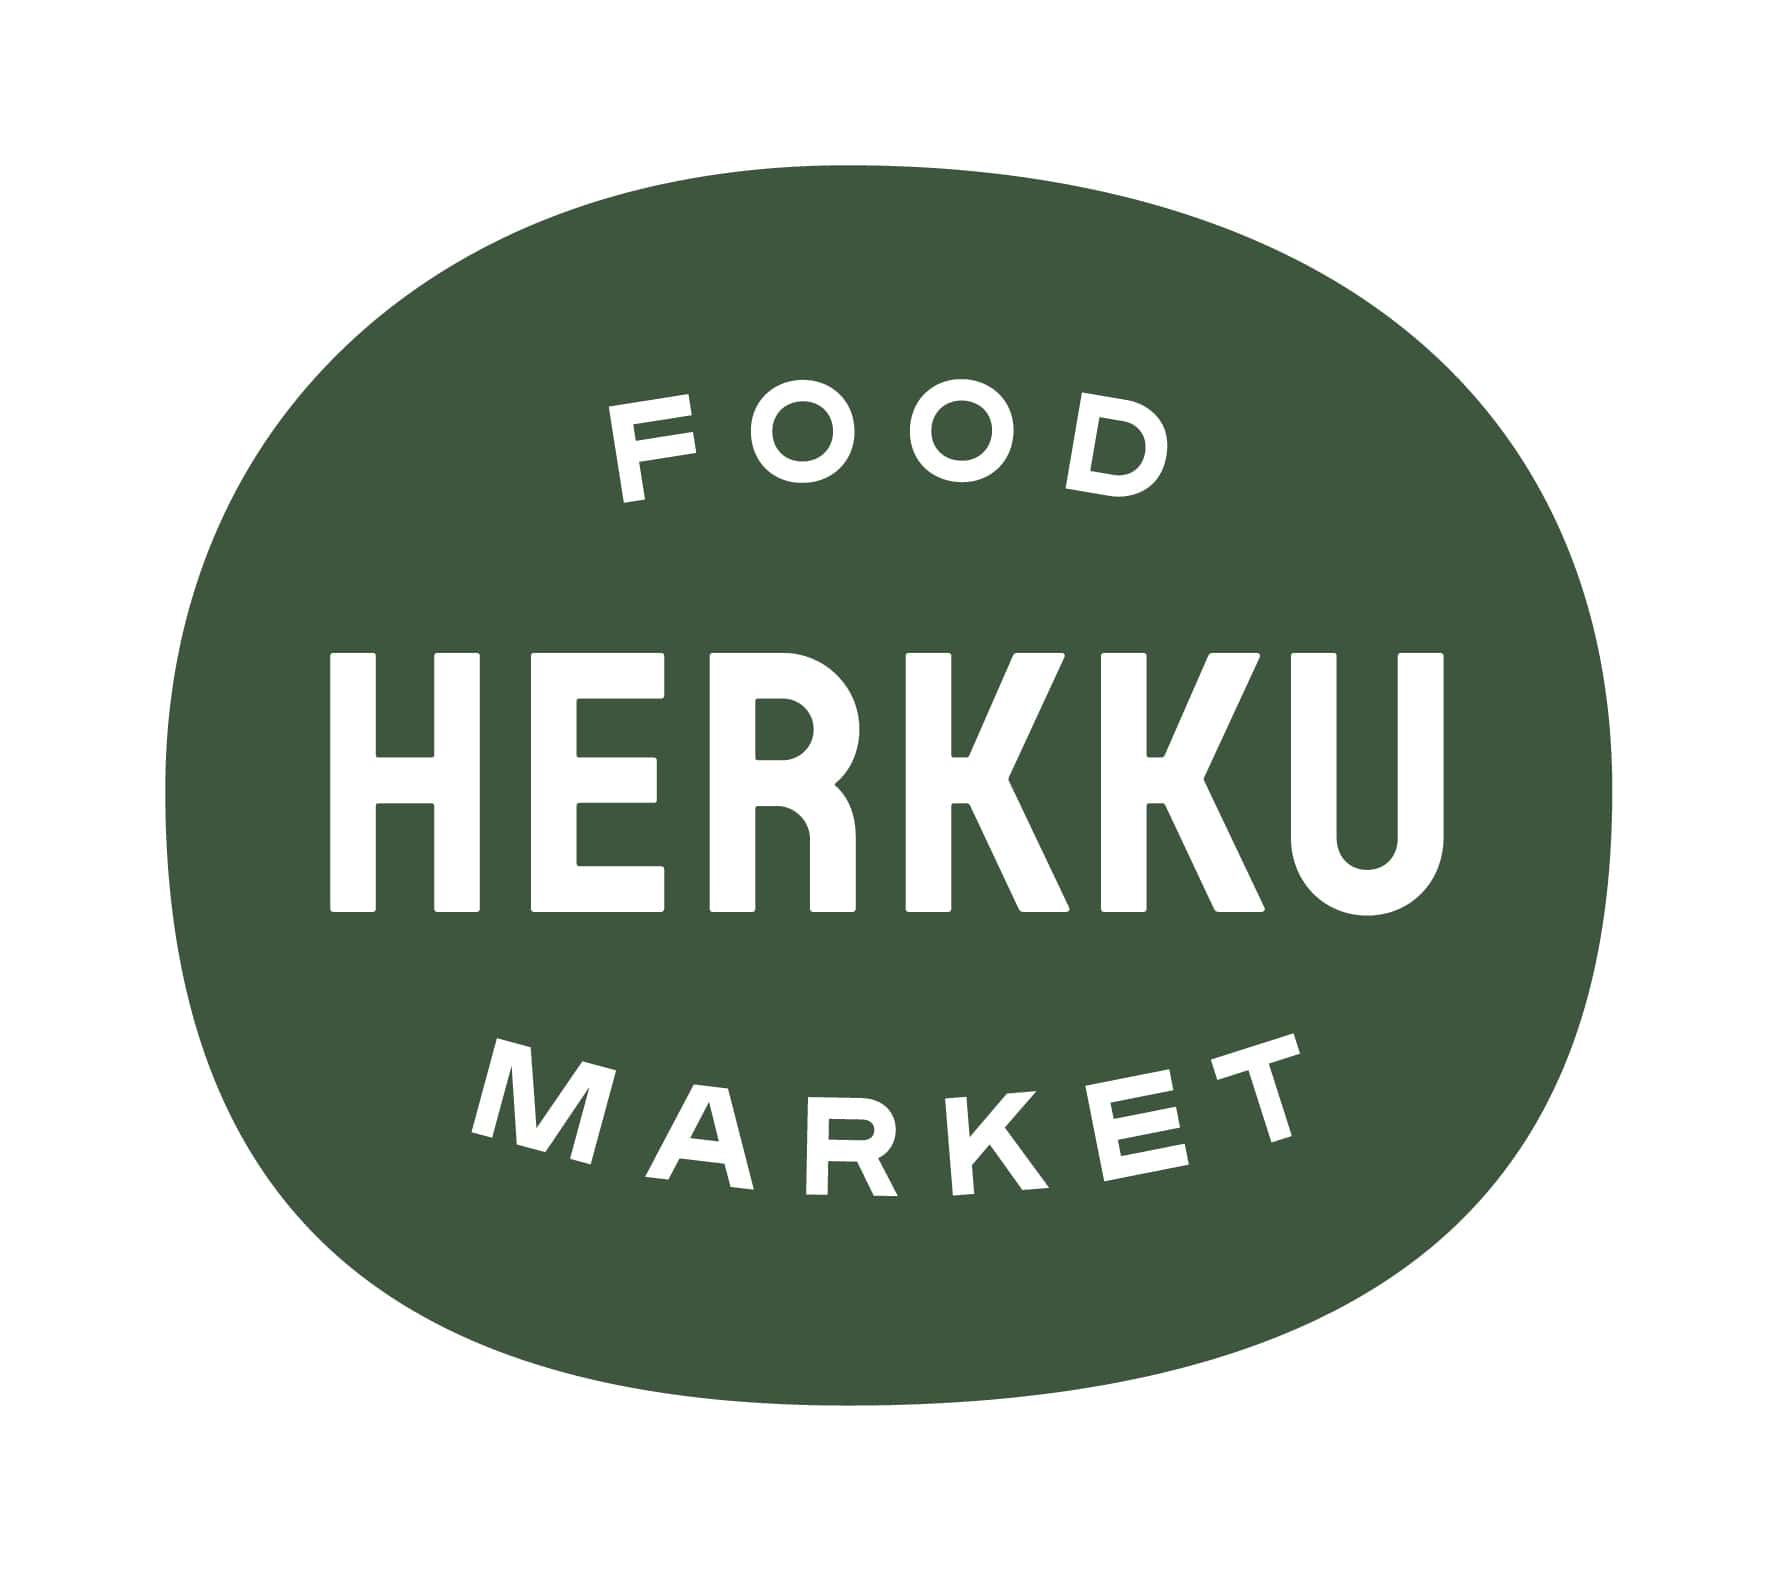 foodmarketherkku